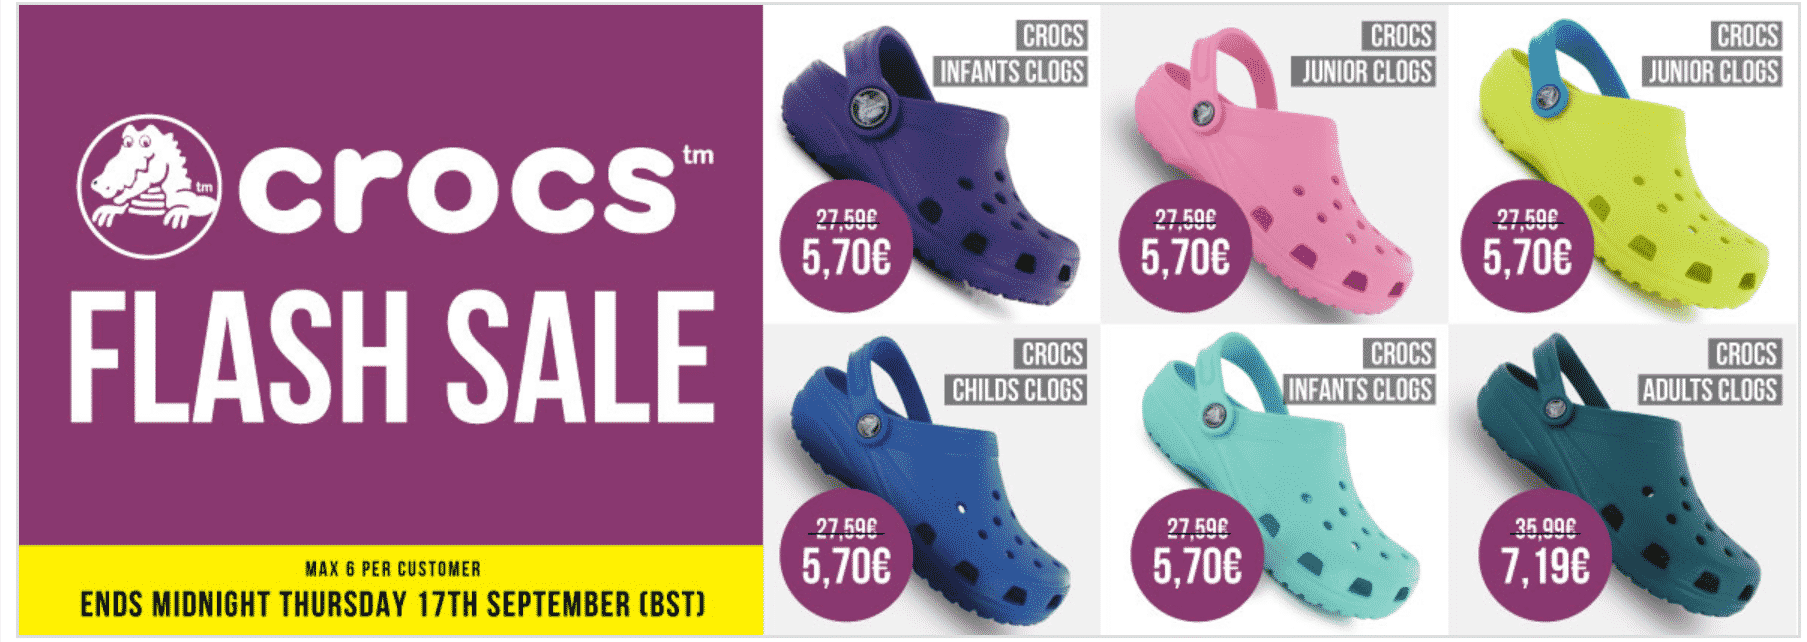 vente-flash-crocs-sport-direct